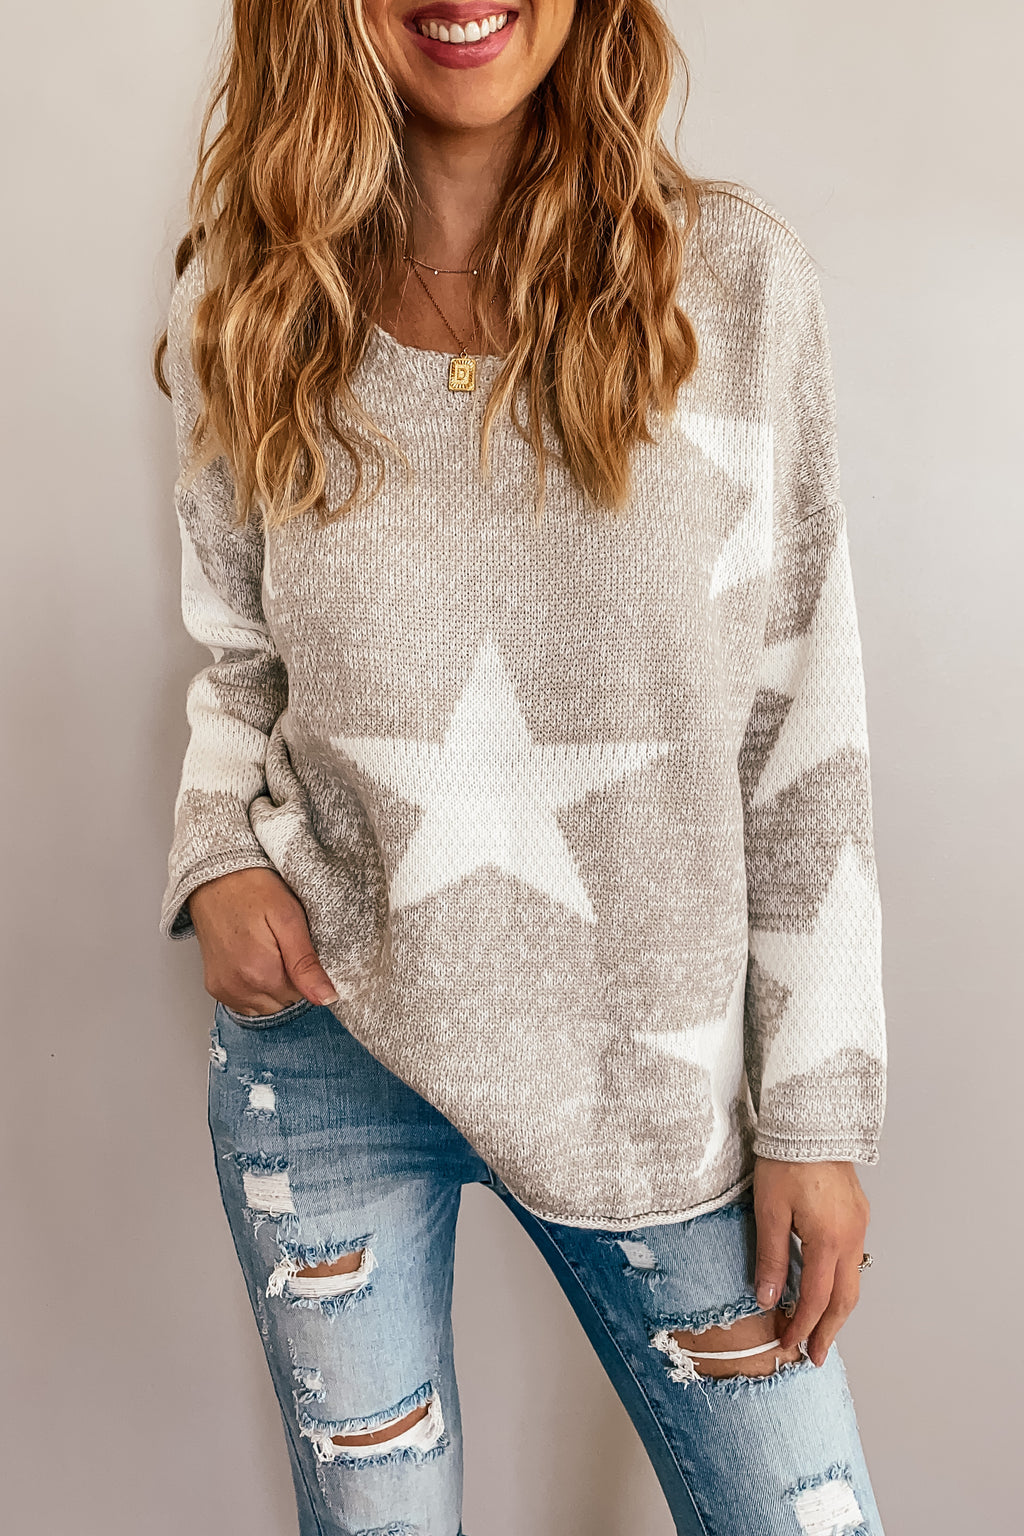 Count Your Stars Sweater